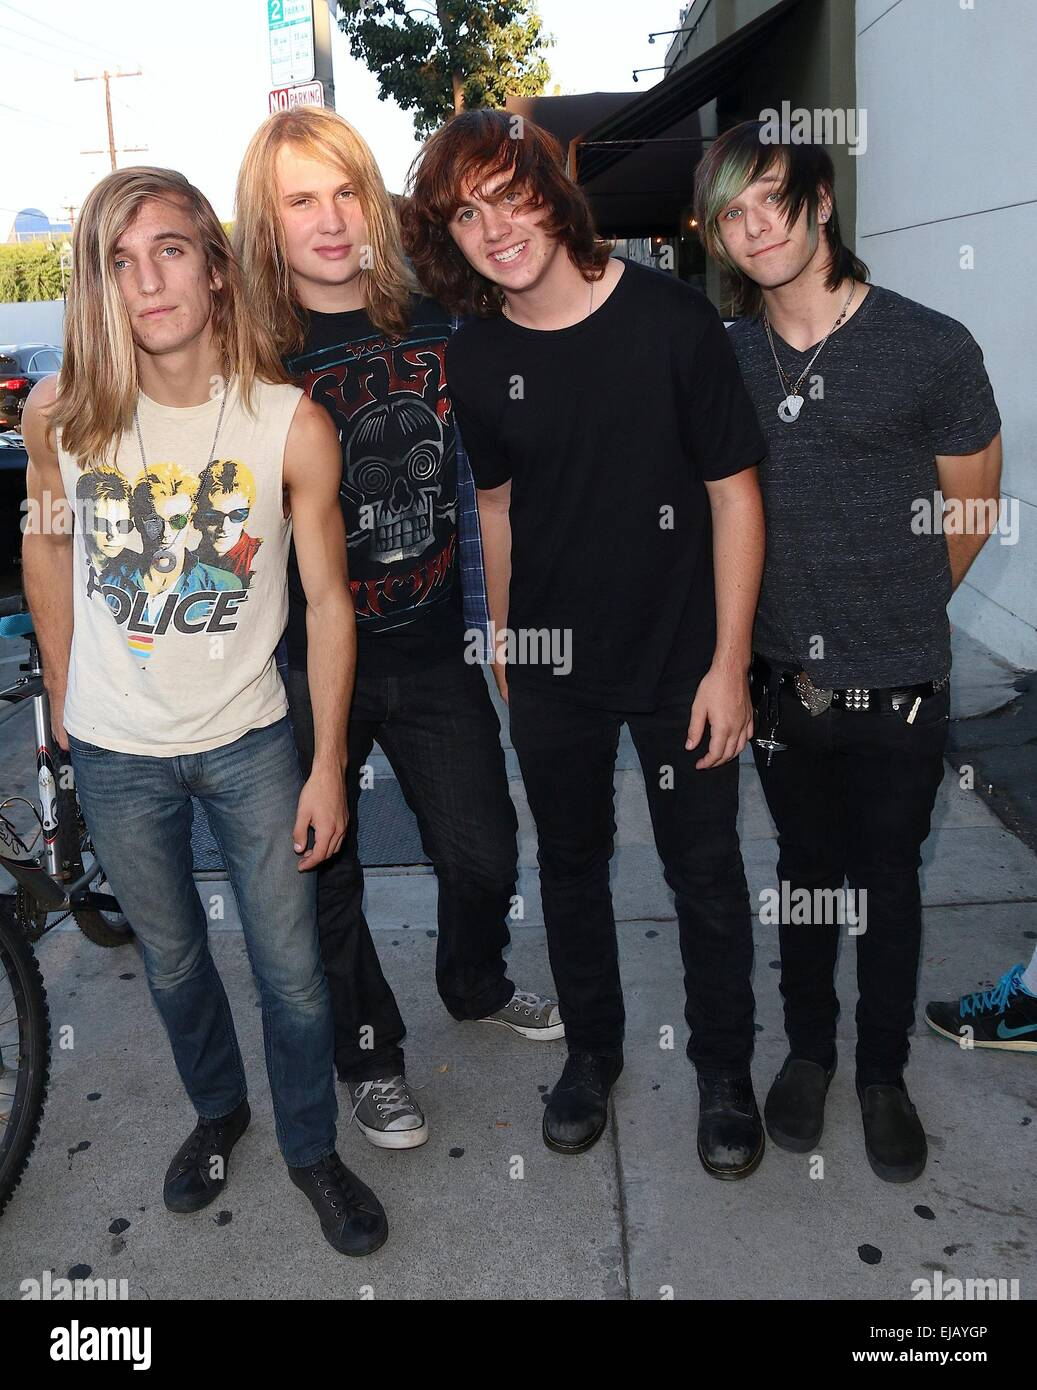 Alternative rock band Galvanized Souls out and about in West Hollywood Featuring: Matt DeMartini,Zakk Silveira,Chris - Stock Image